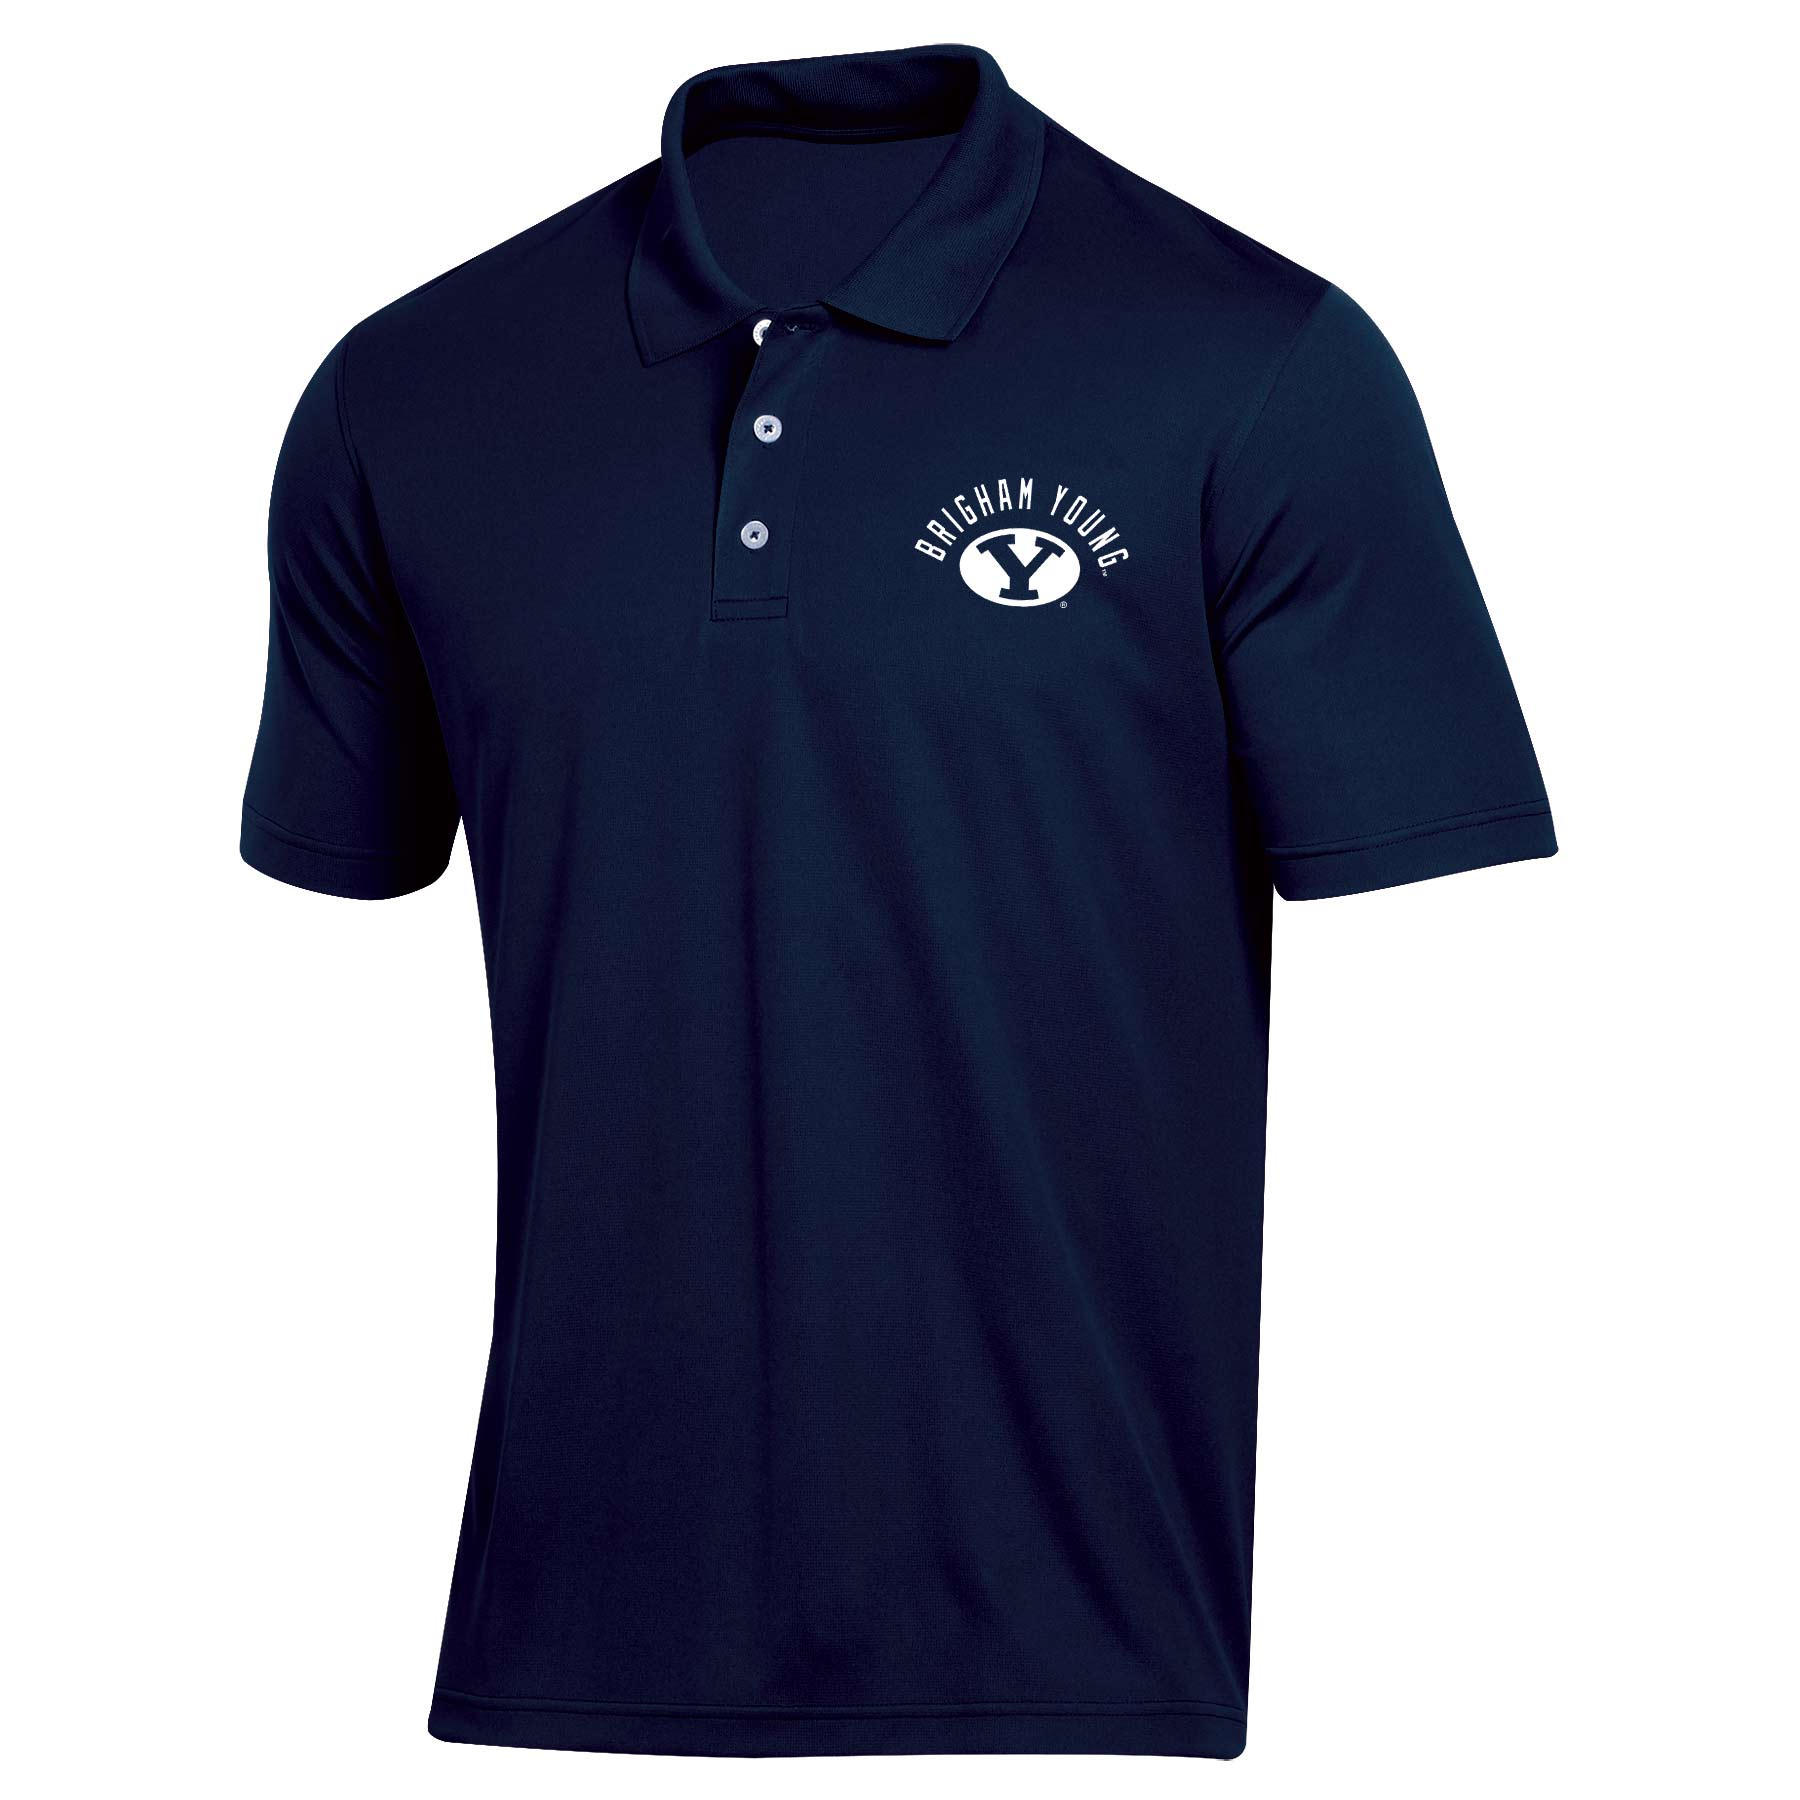 Men's Russell Navy BYU Cougars Classic Dot Mesh Polo